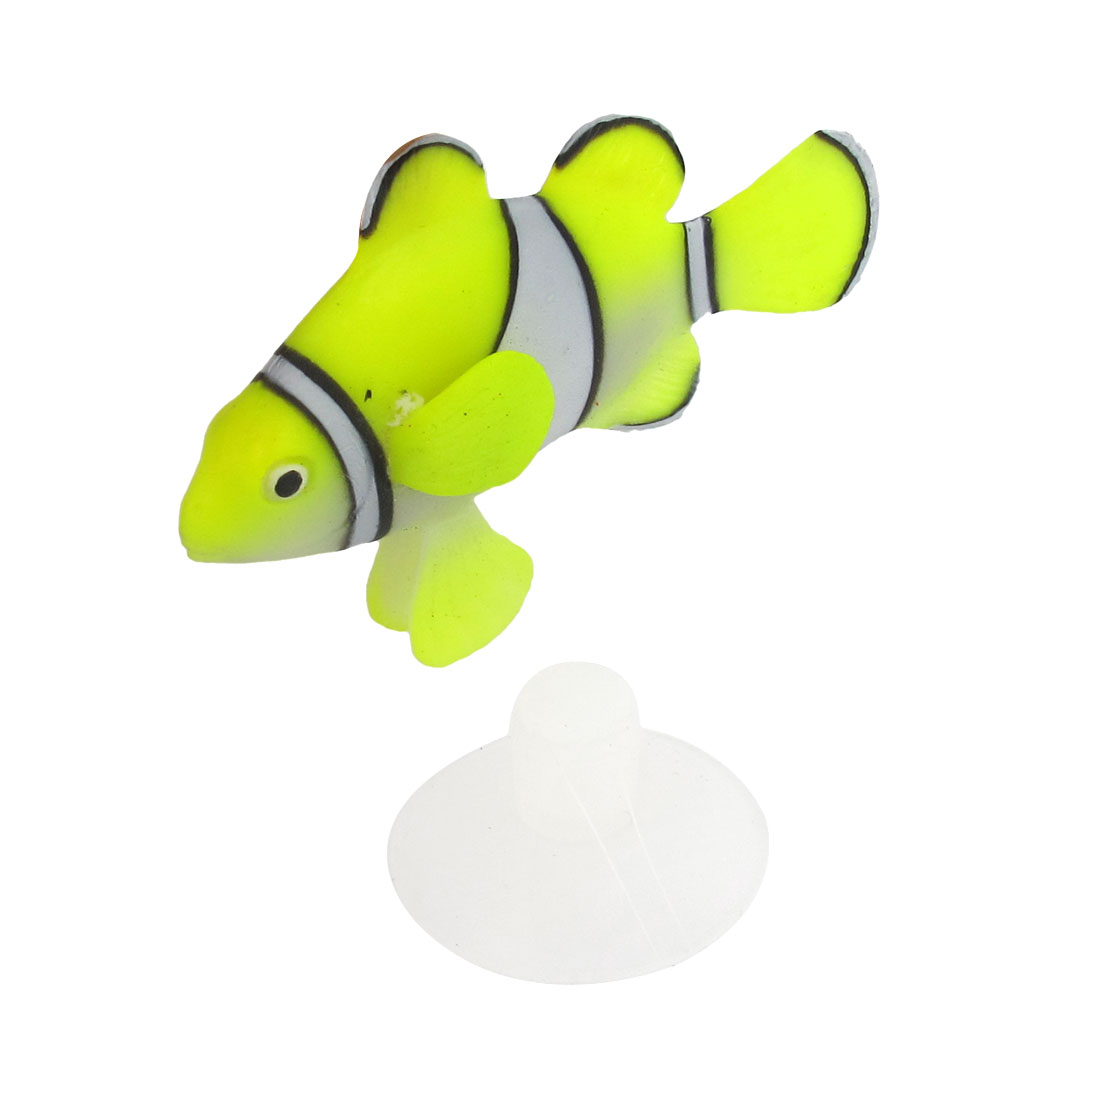 Yellow White Silicone Plastic Artificial Underwater Floating Clownfish Decor w Suction Cup for Fish Tank Aquarium